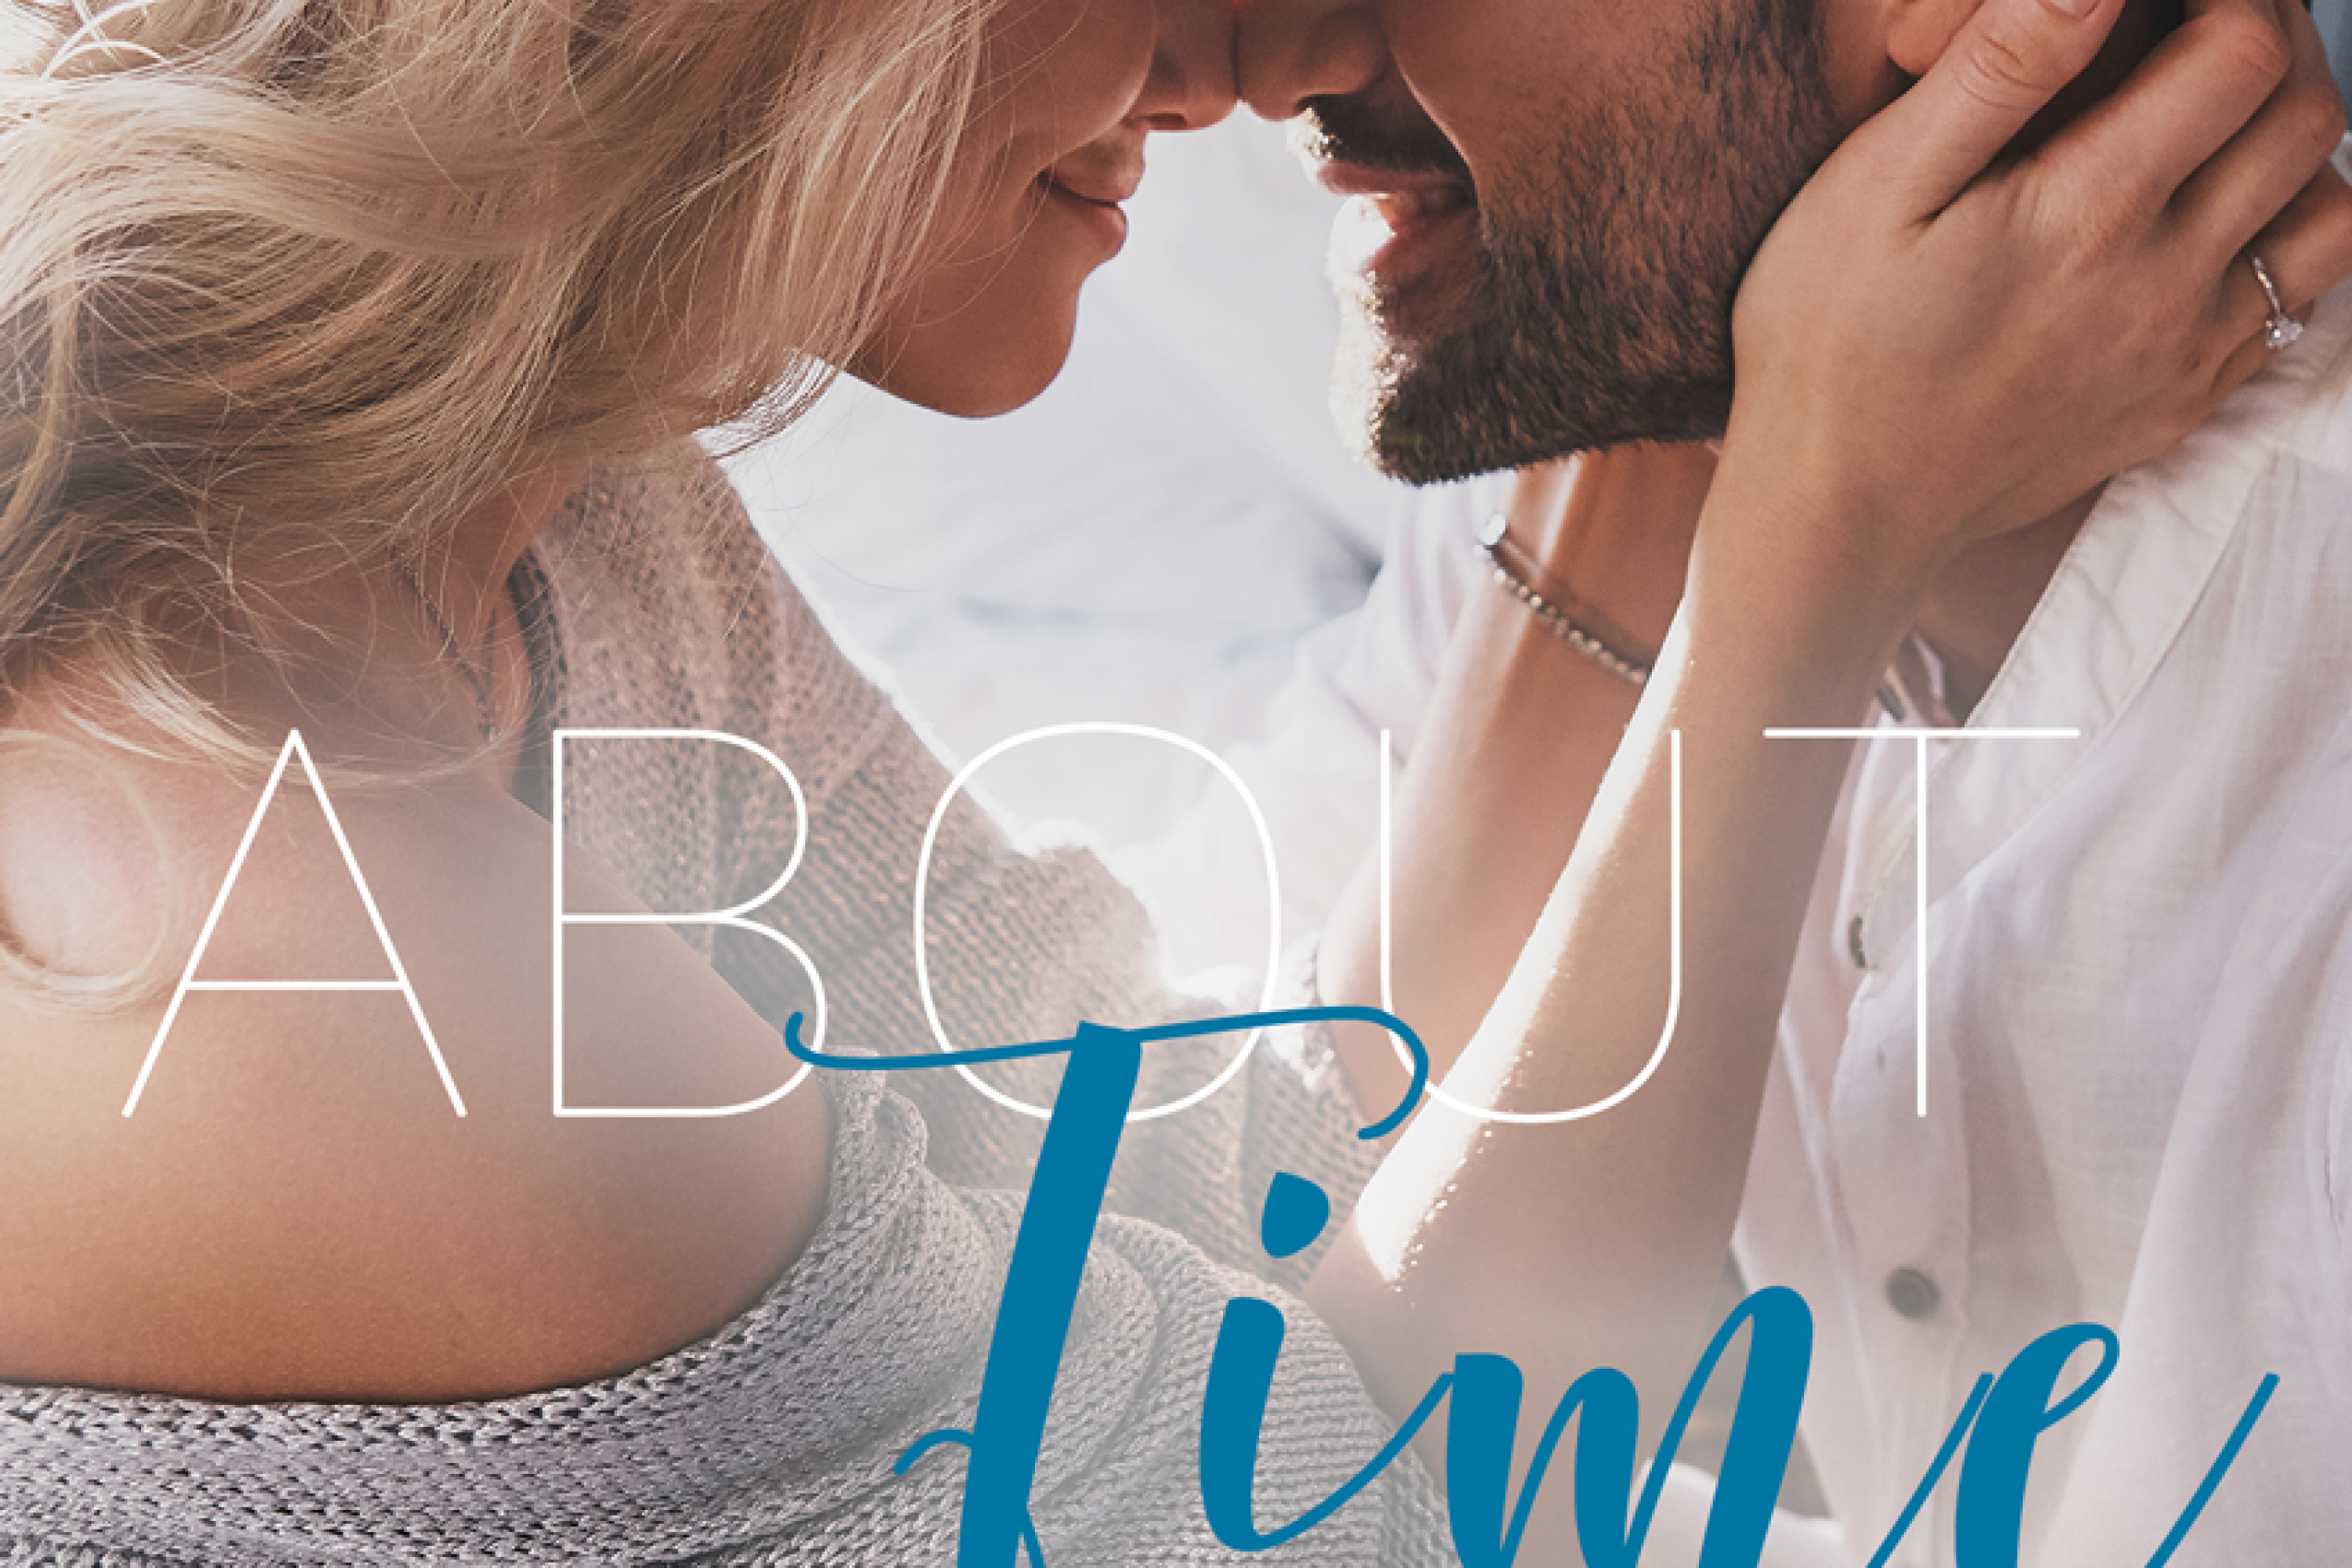 New and Only $0.99: About Time by B. Cranford